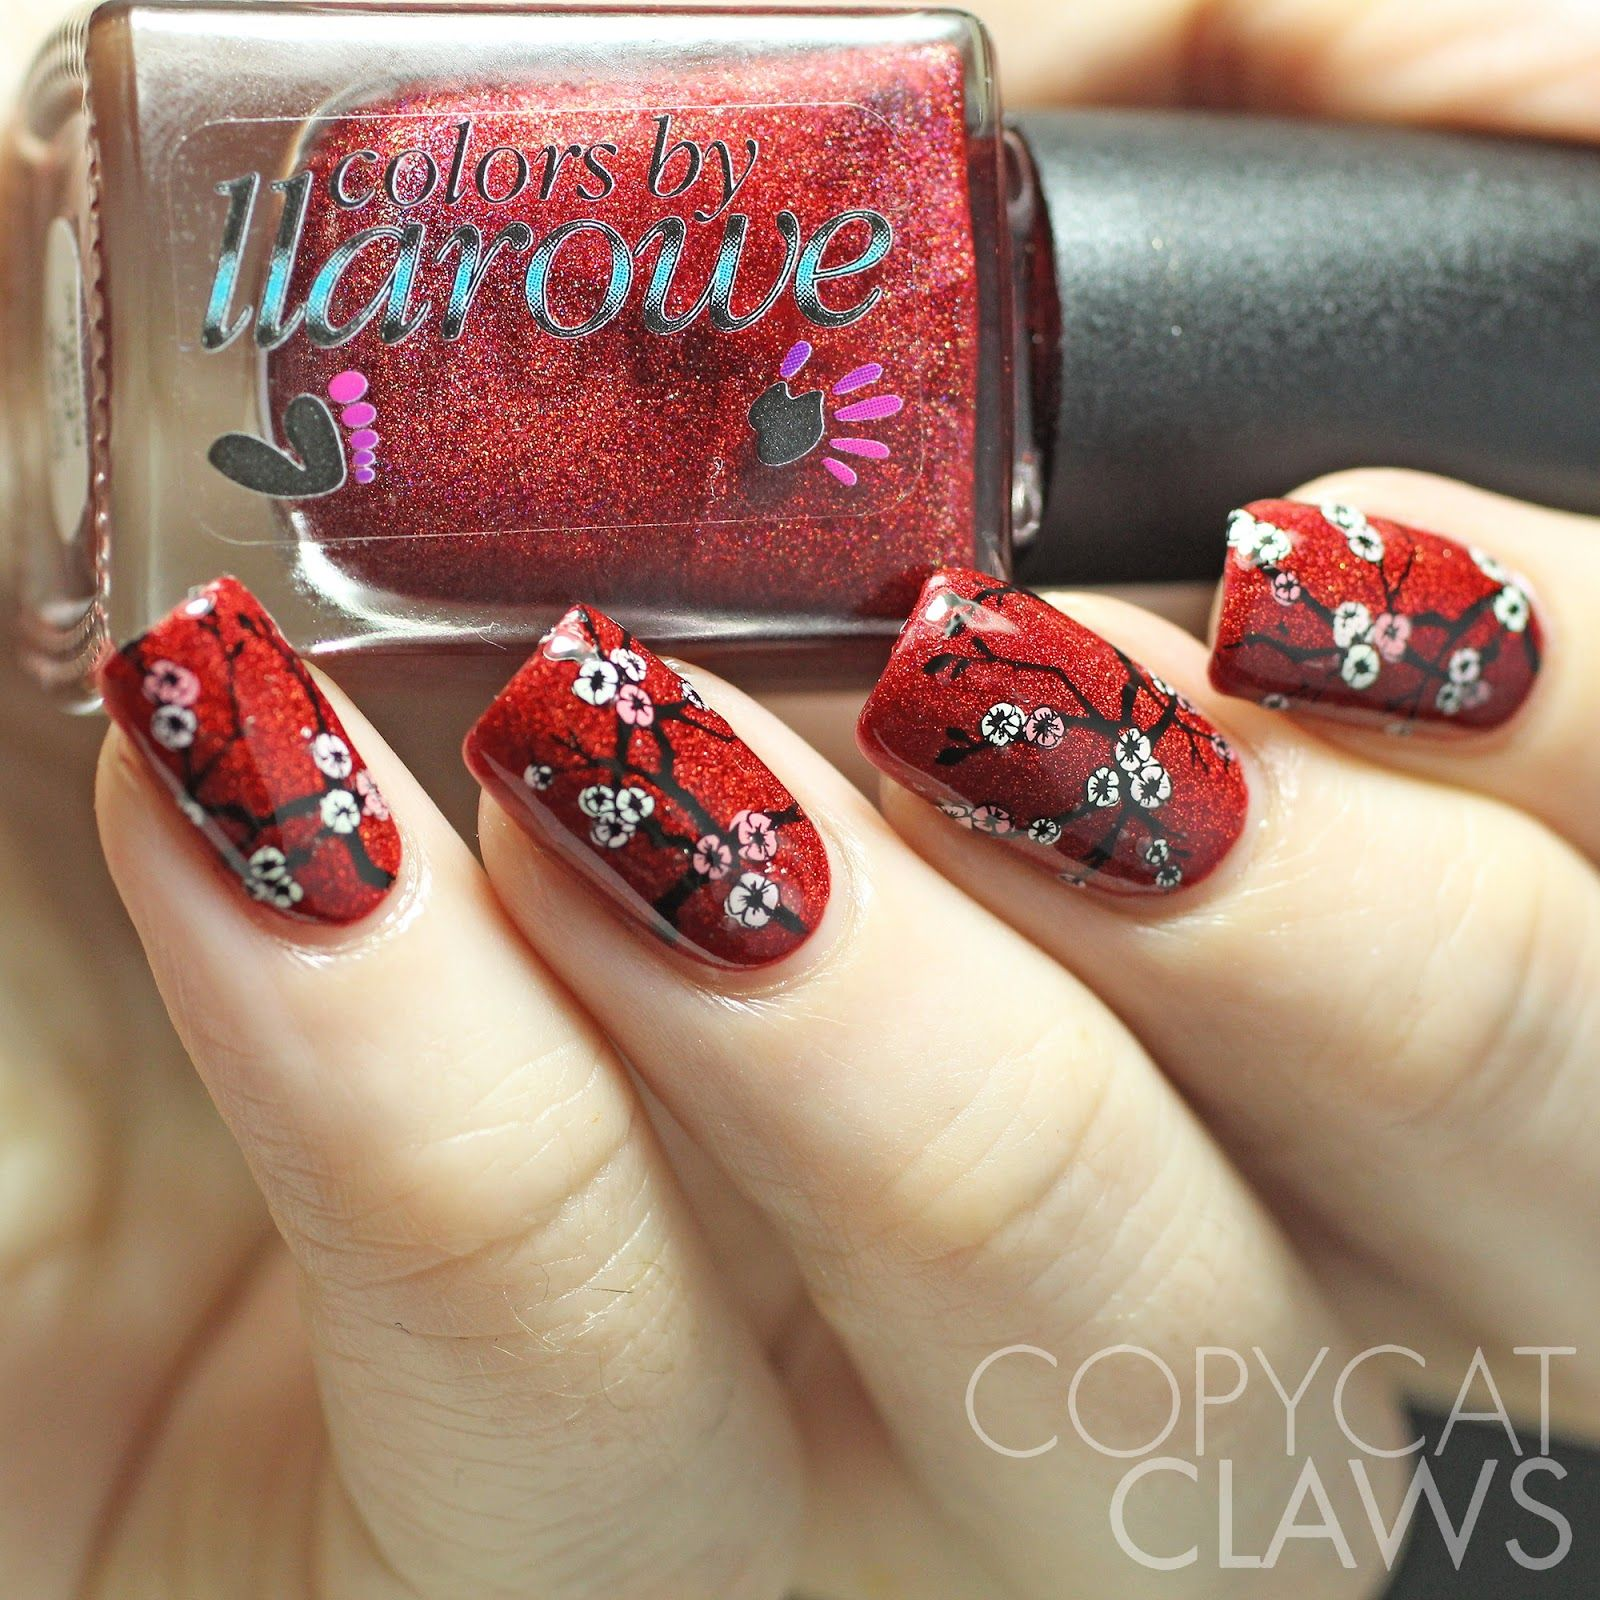 Copycat Claws Sunday Stamping Chinese New Year Nails These Are